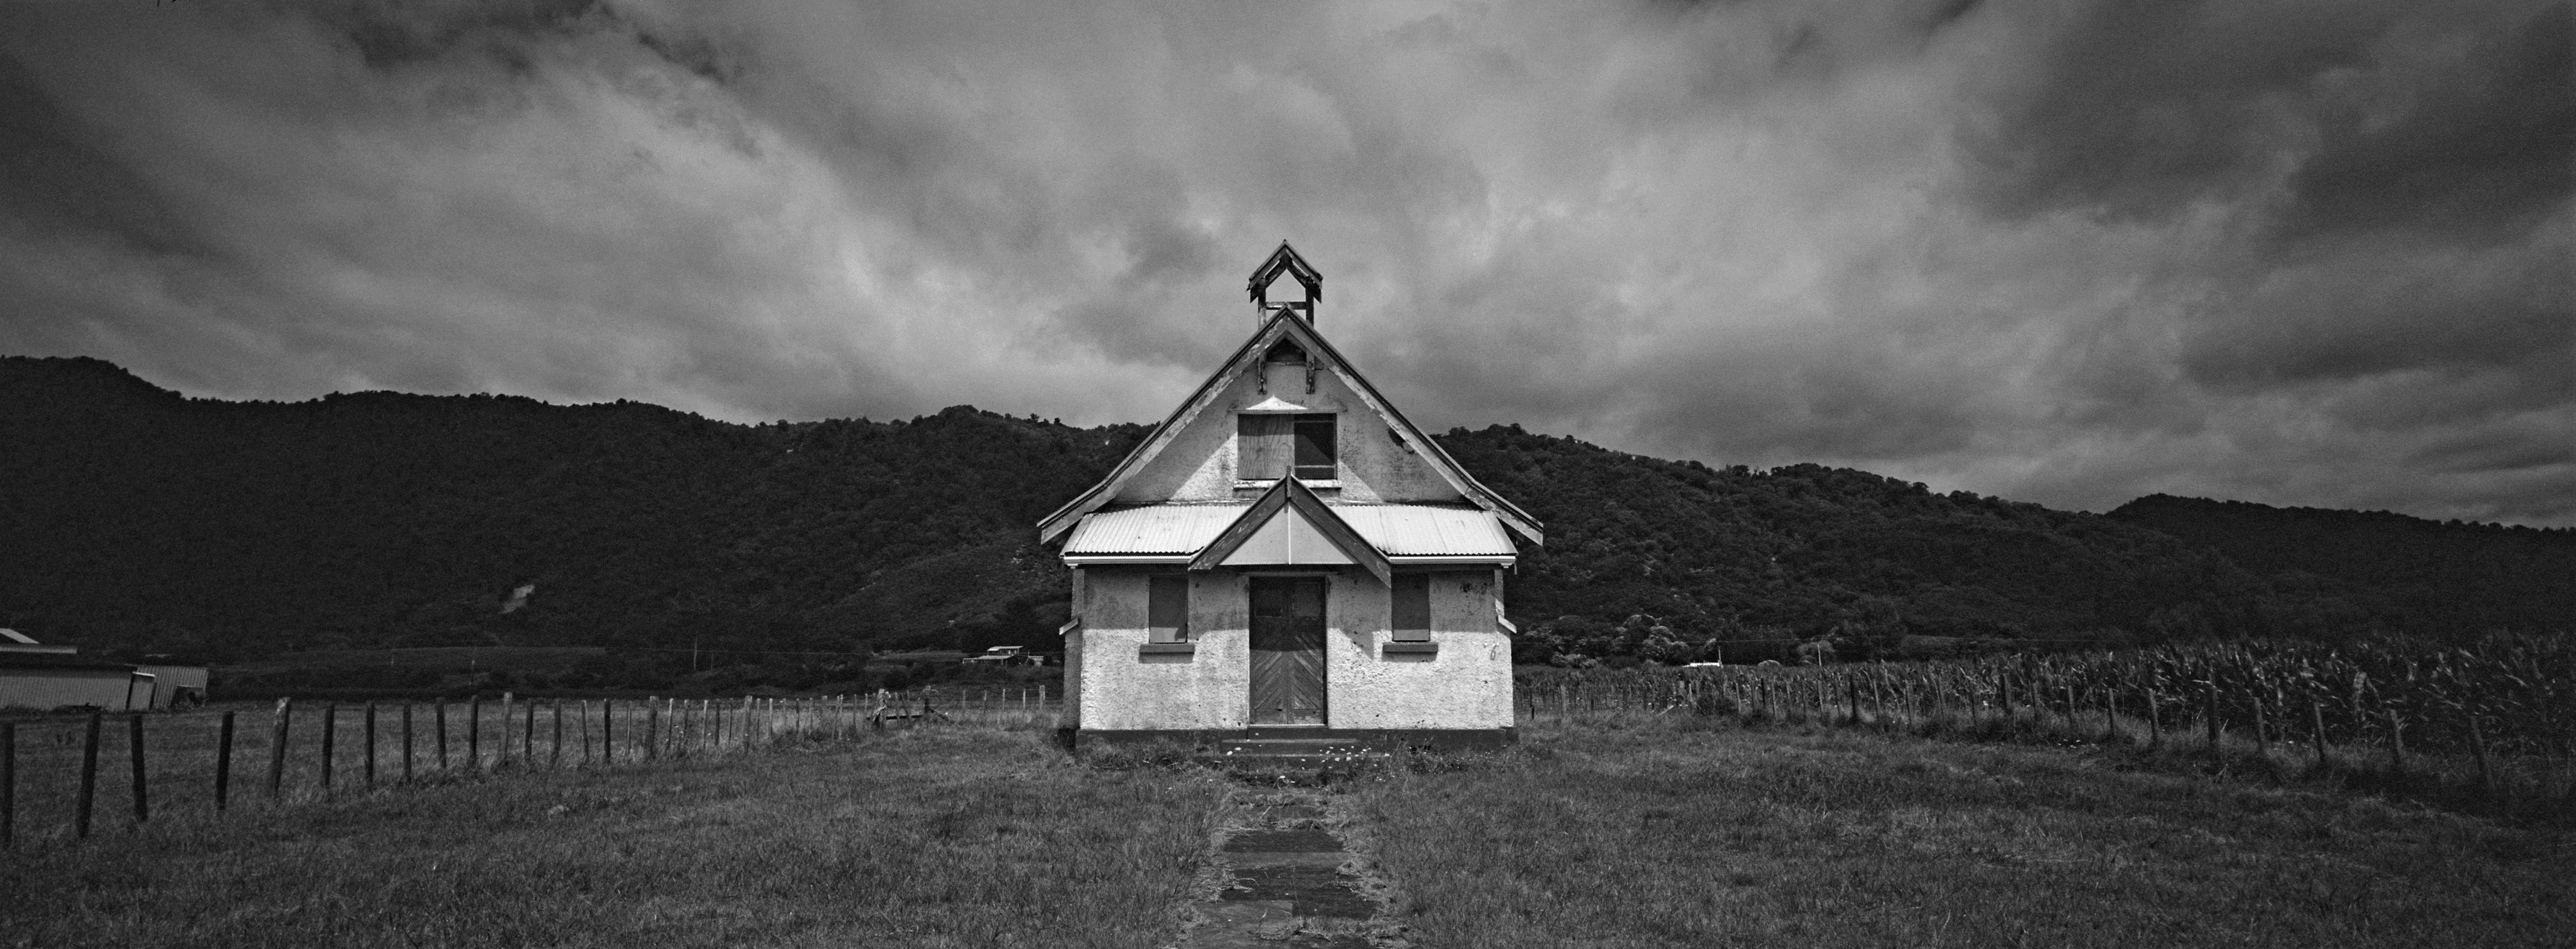 Omaio Church Xpan